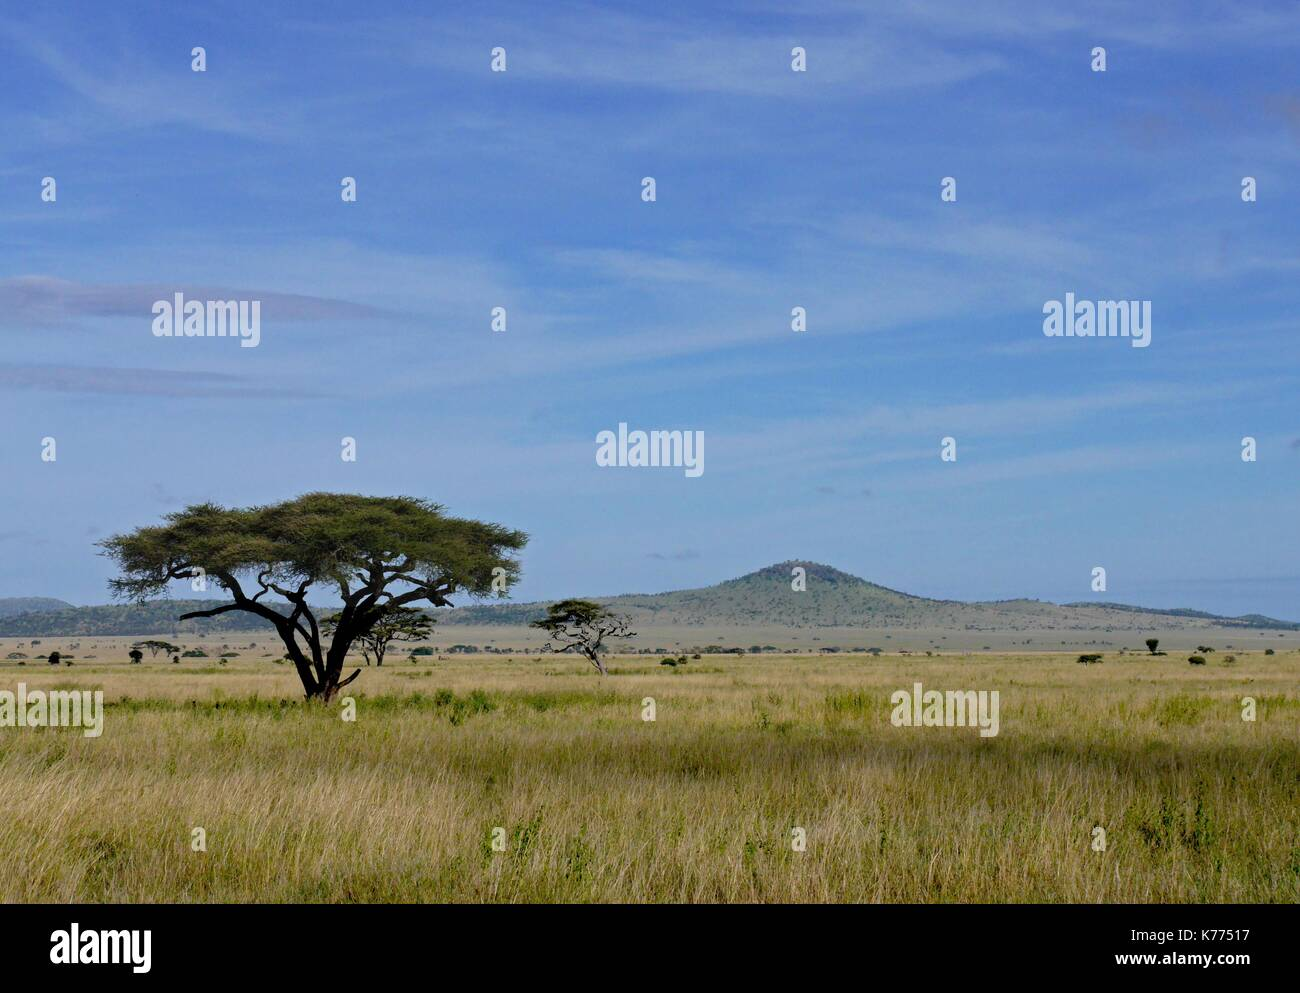 The vast open plains of the Serengeti National Park, Tanzania - Stock Image